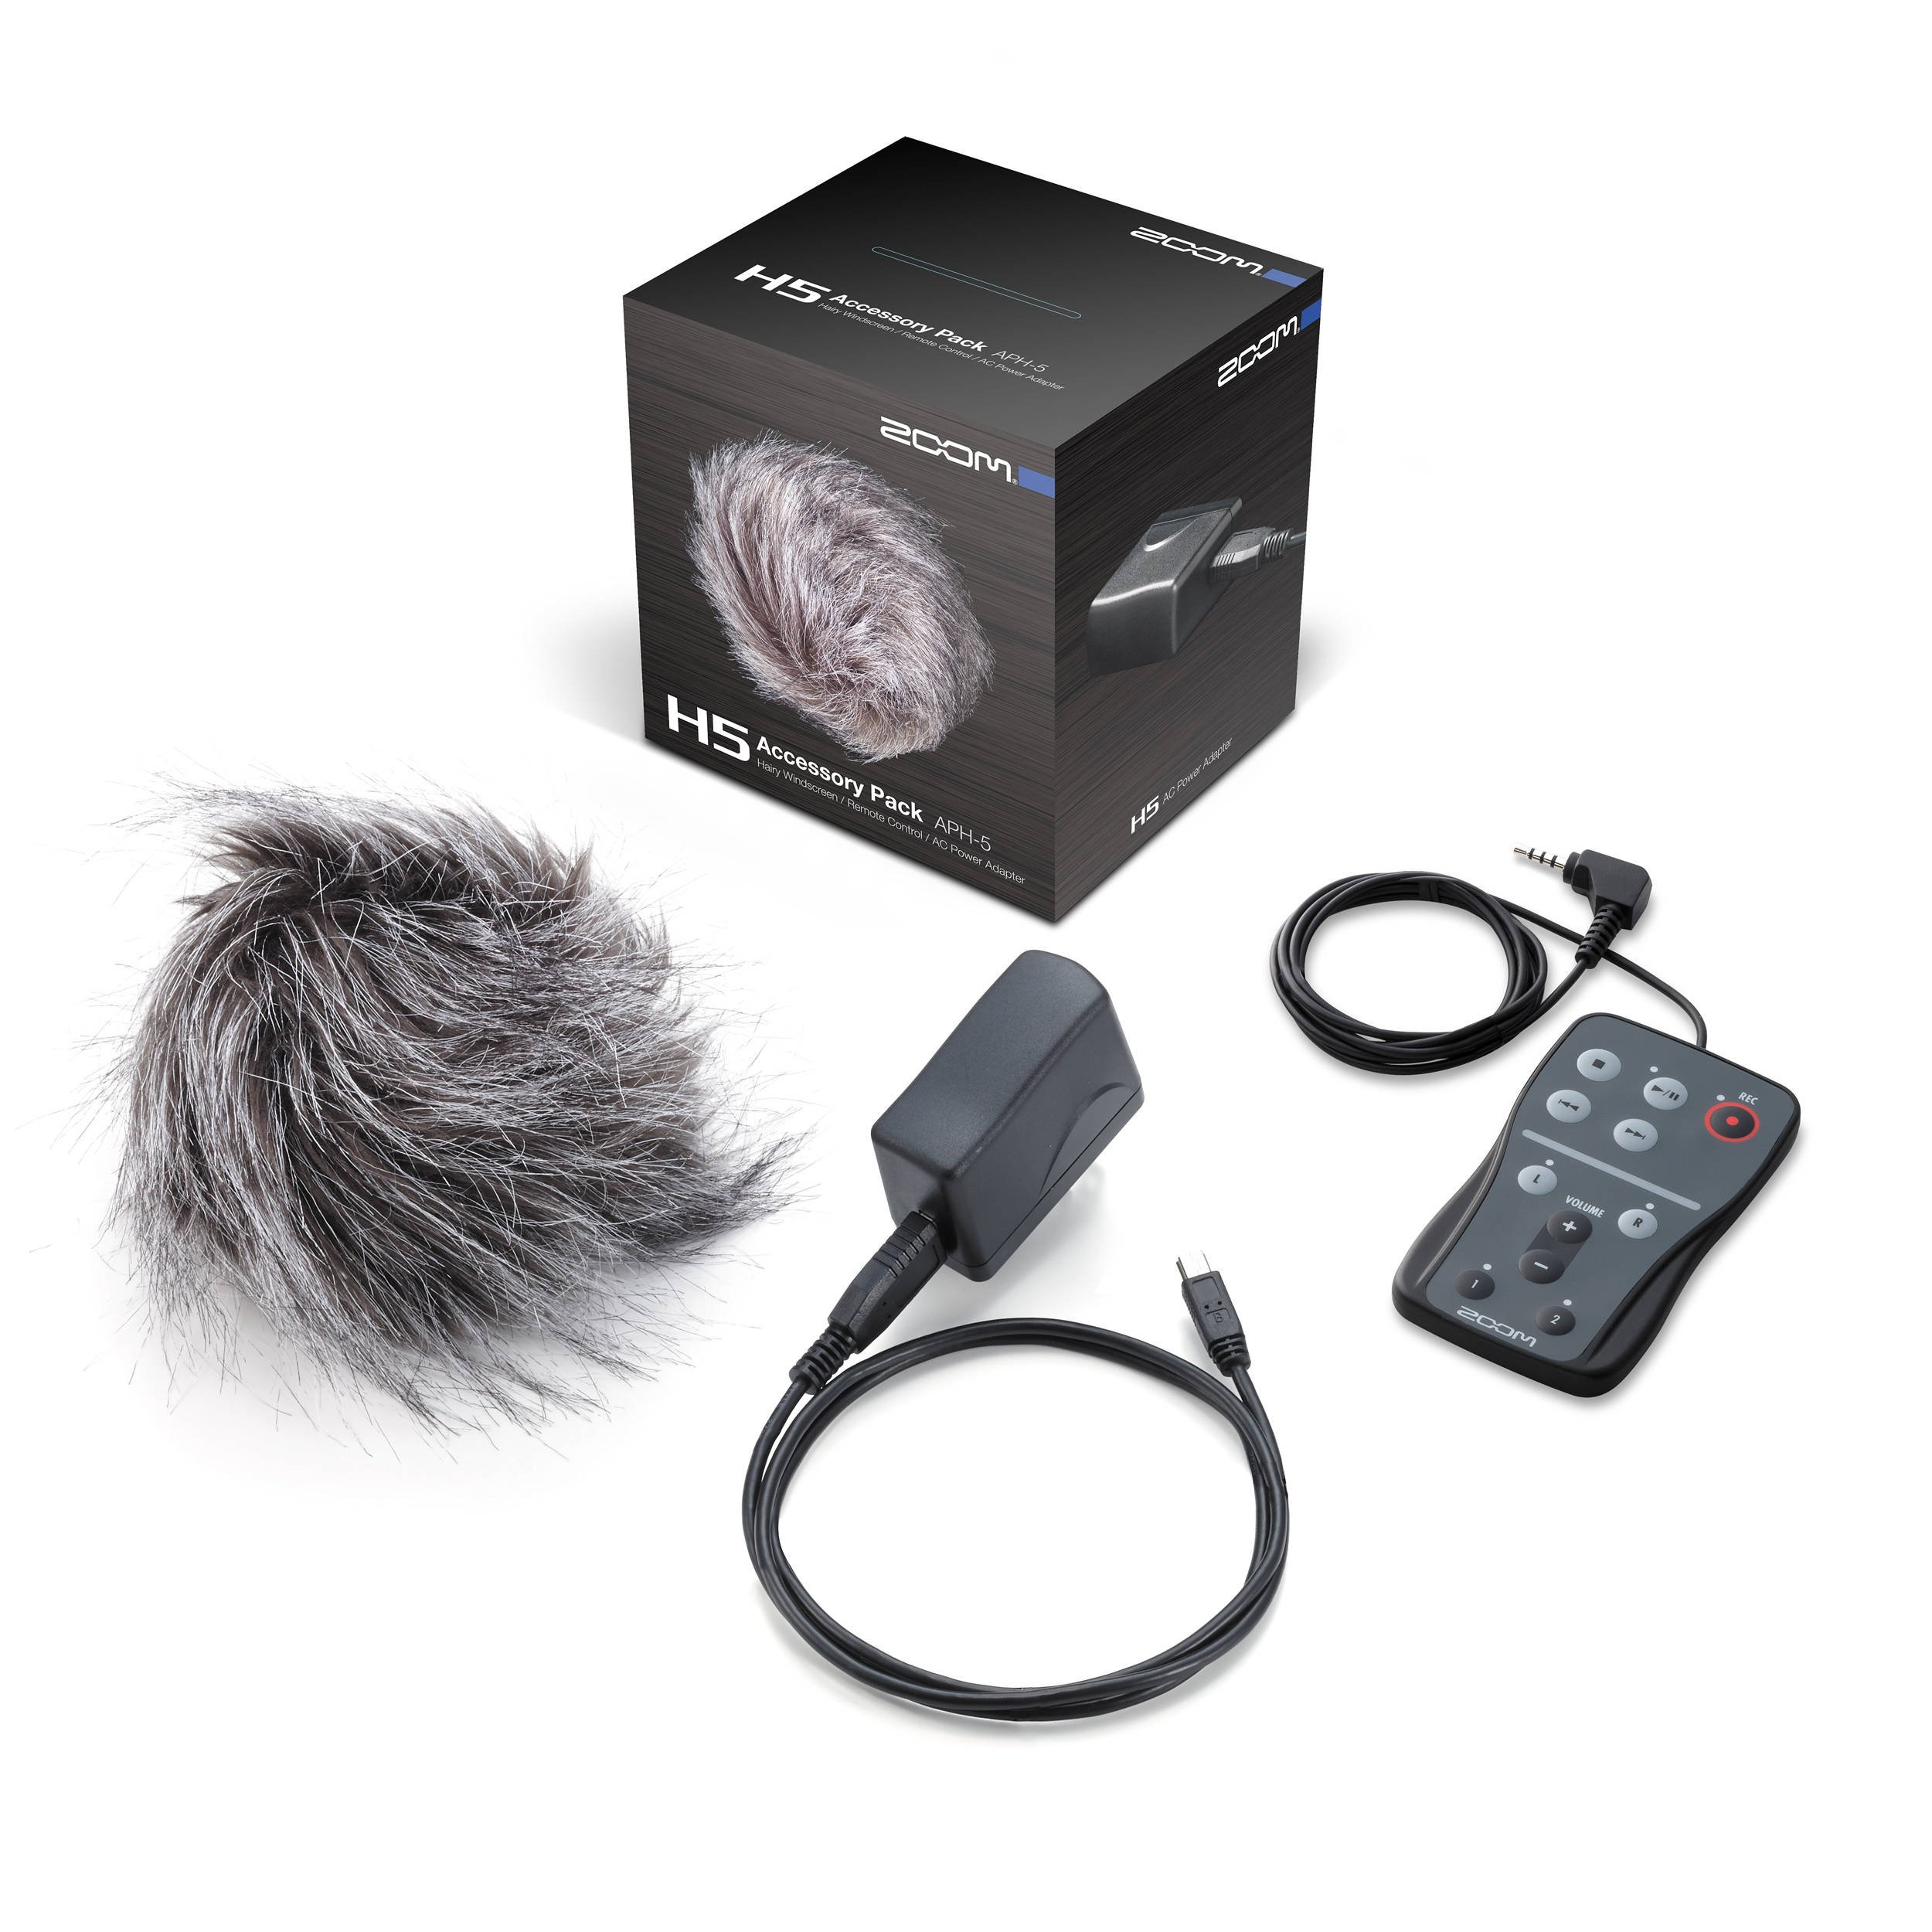 Zoom APH-5 Accessory Pack (International Version - No Warranty)